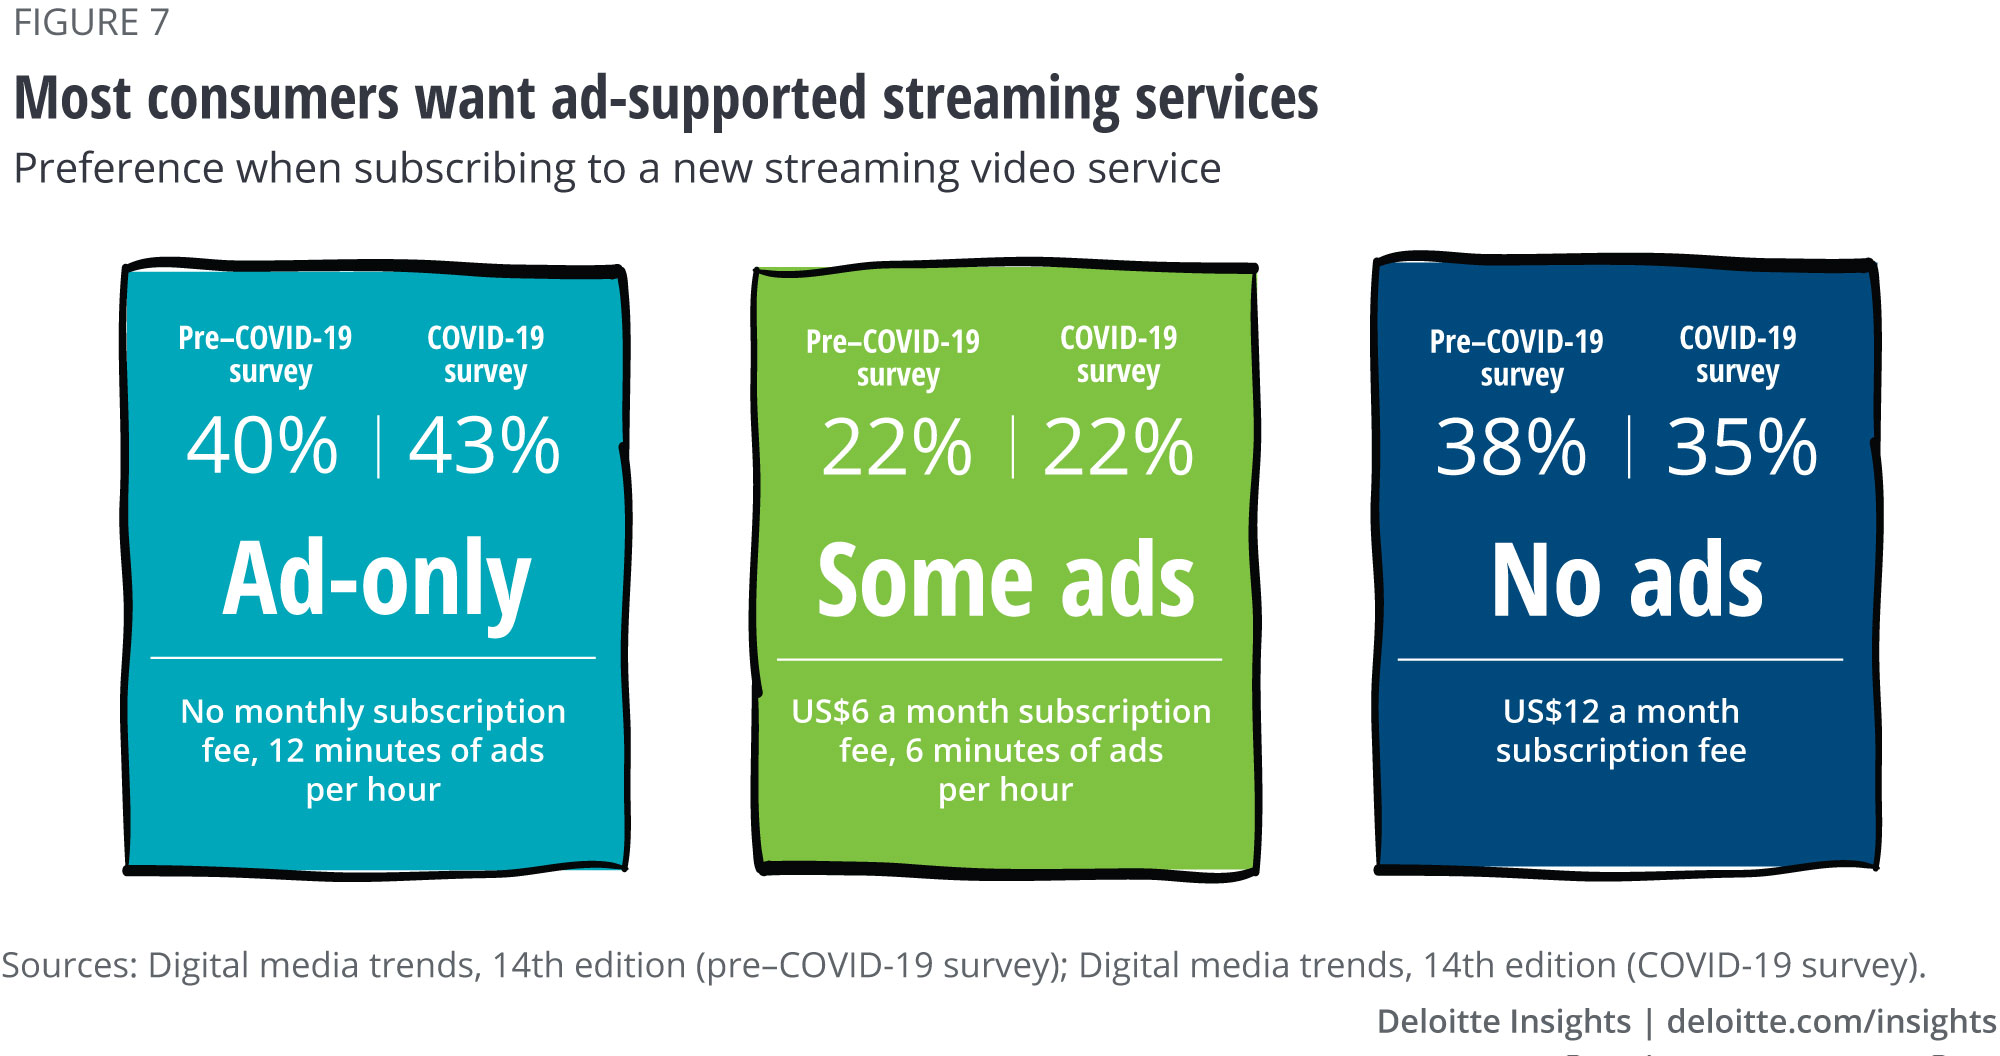 Most consumers want ad-supported streaming services